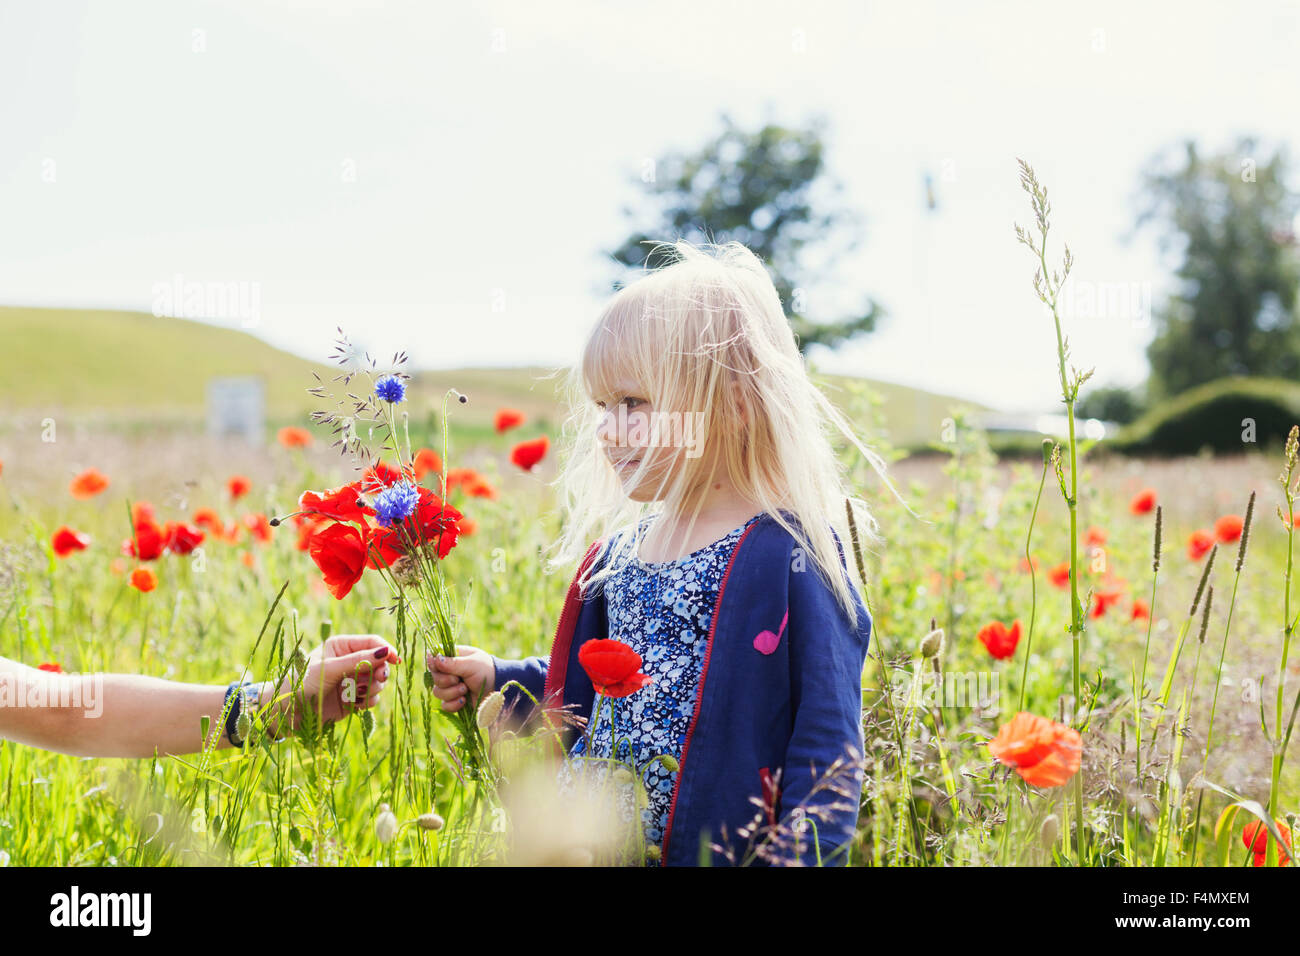 Woman's hand giving wildflowers to cute girl standing at grassy field - Stock Image